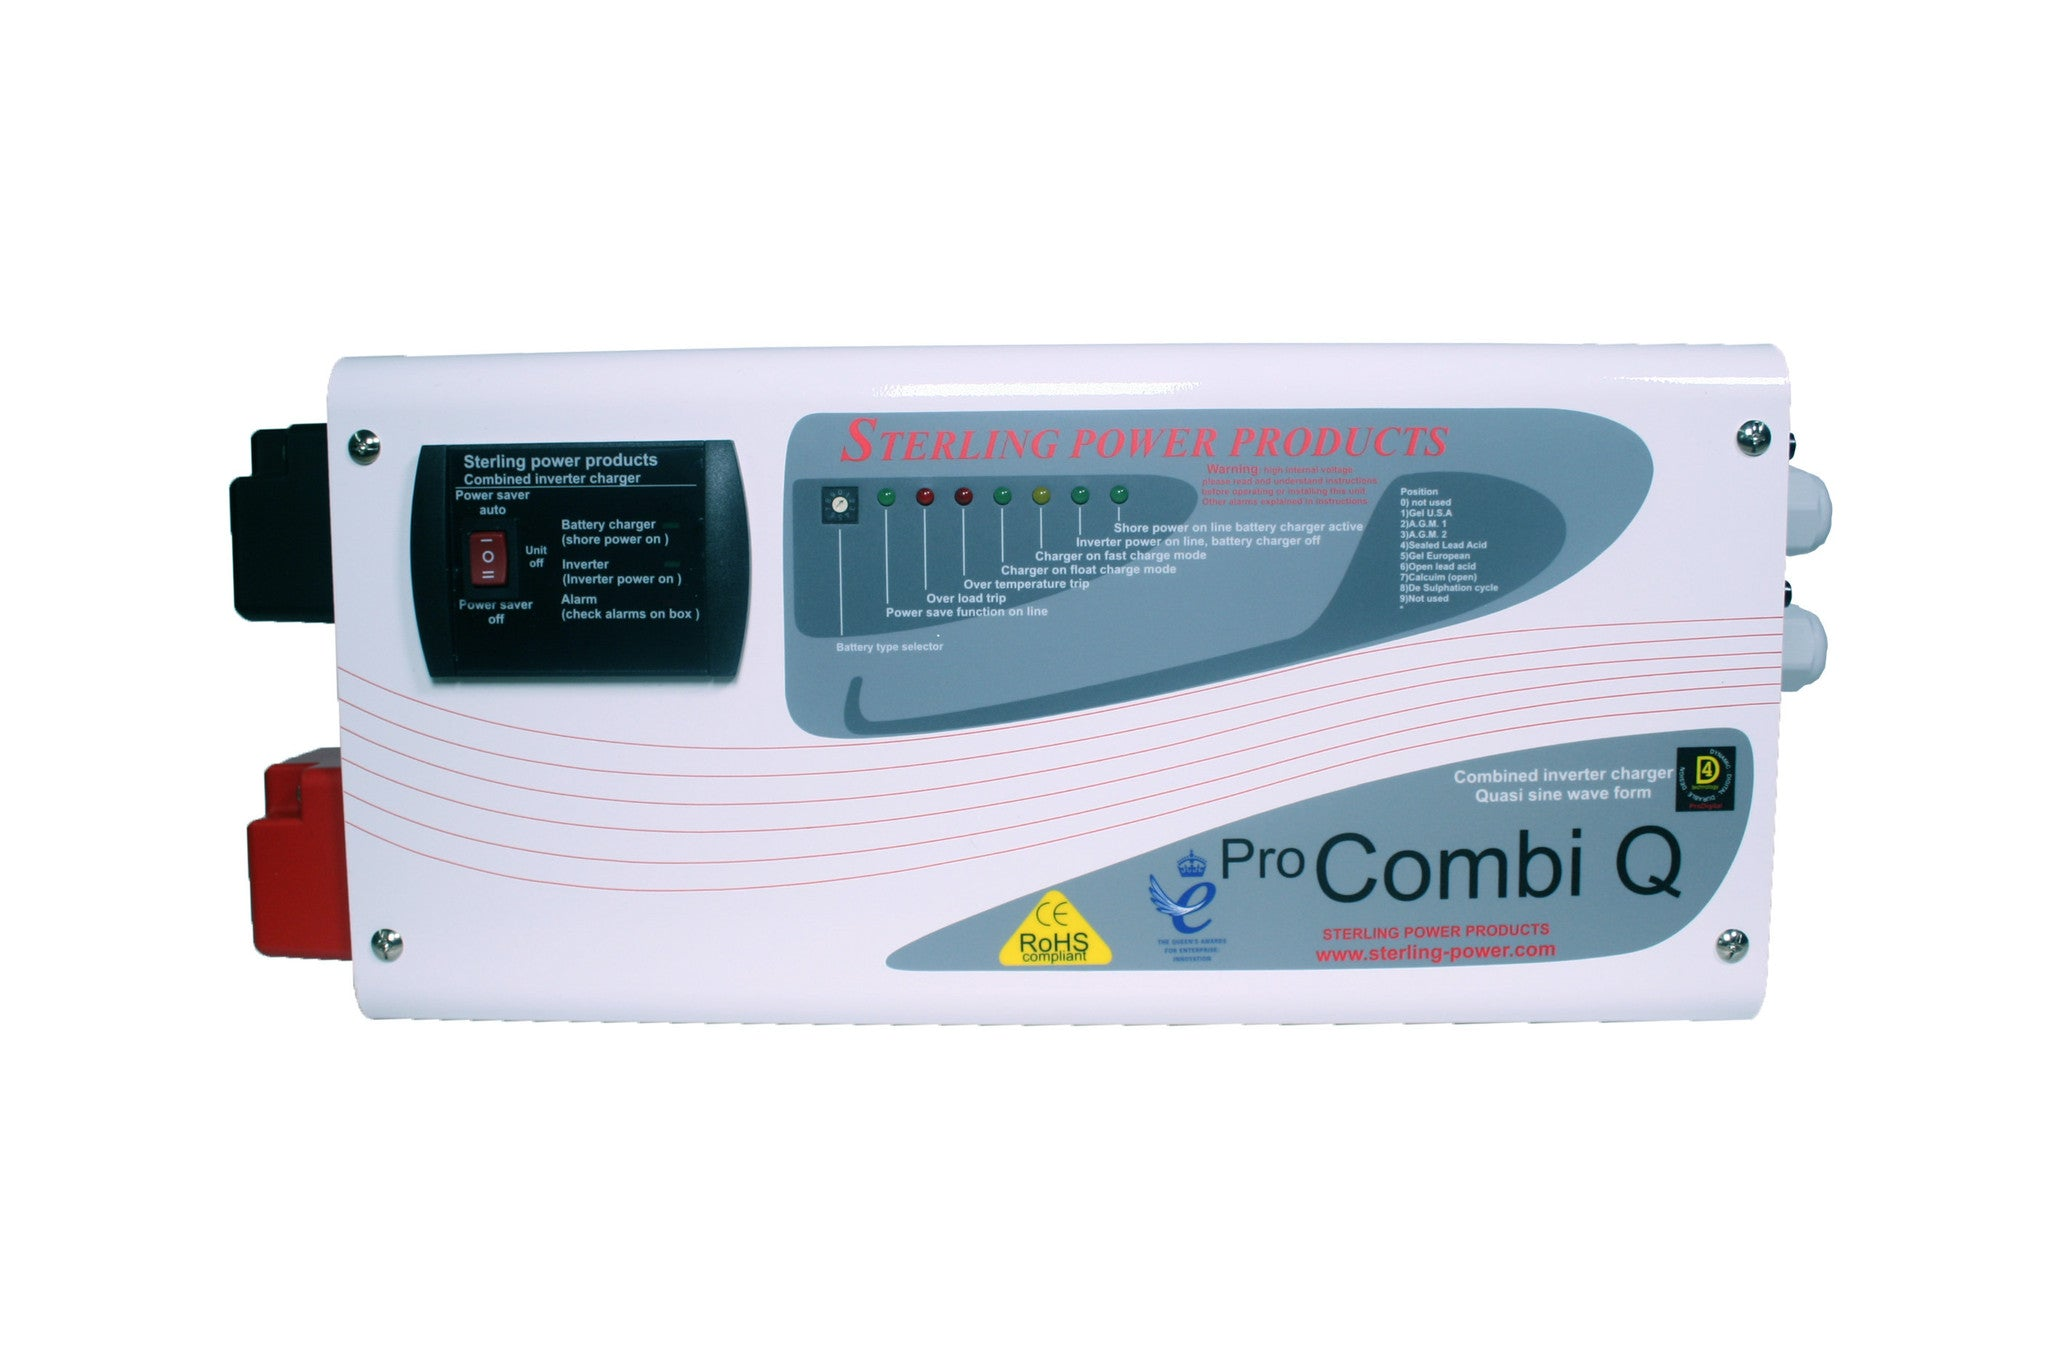 Pro Combi Q Quasi Sine wave | Sterling Power Products